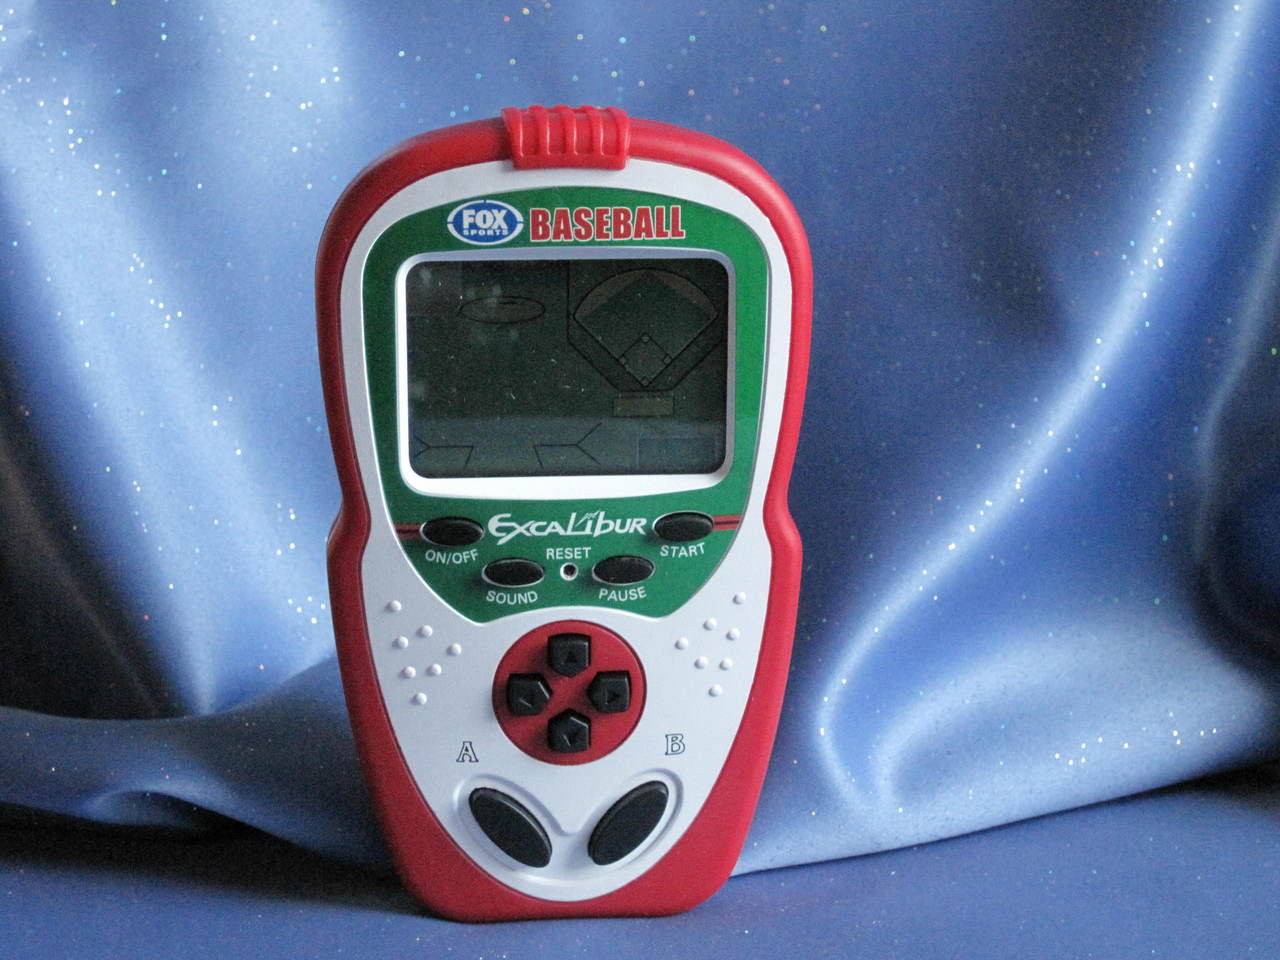 Baseball Electronic Handheld Game by Fox Sports.